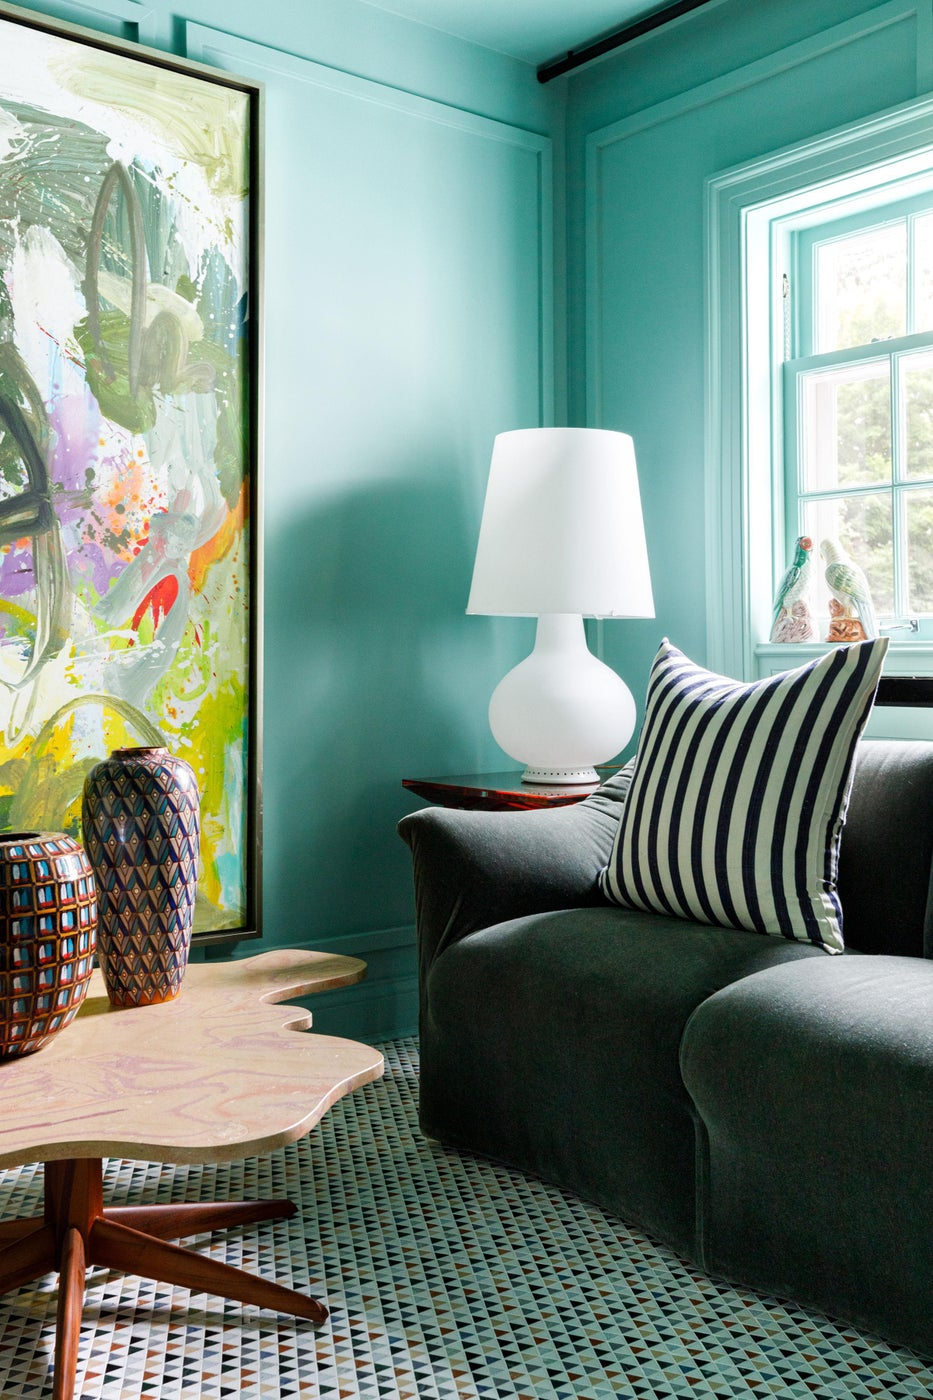 Lake Forest Showhouse 2020 : Marble Mosaic Floor, Mid Century Lamp, Mario Bellini Loveseat, Custom Coffee Table, Abstract Art, Stripe Pillow, Green Walls